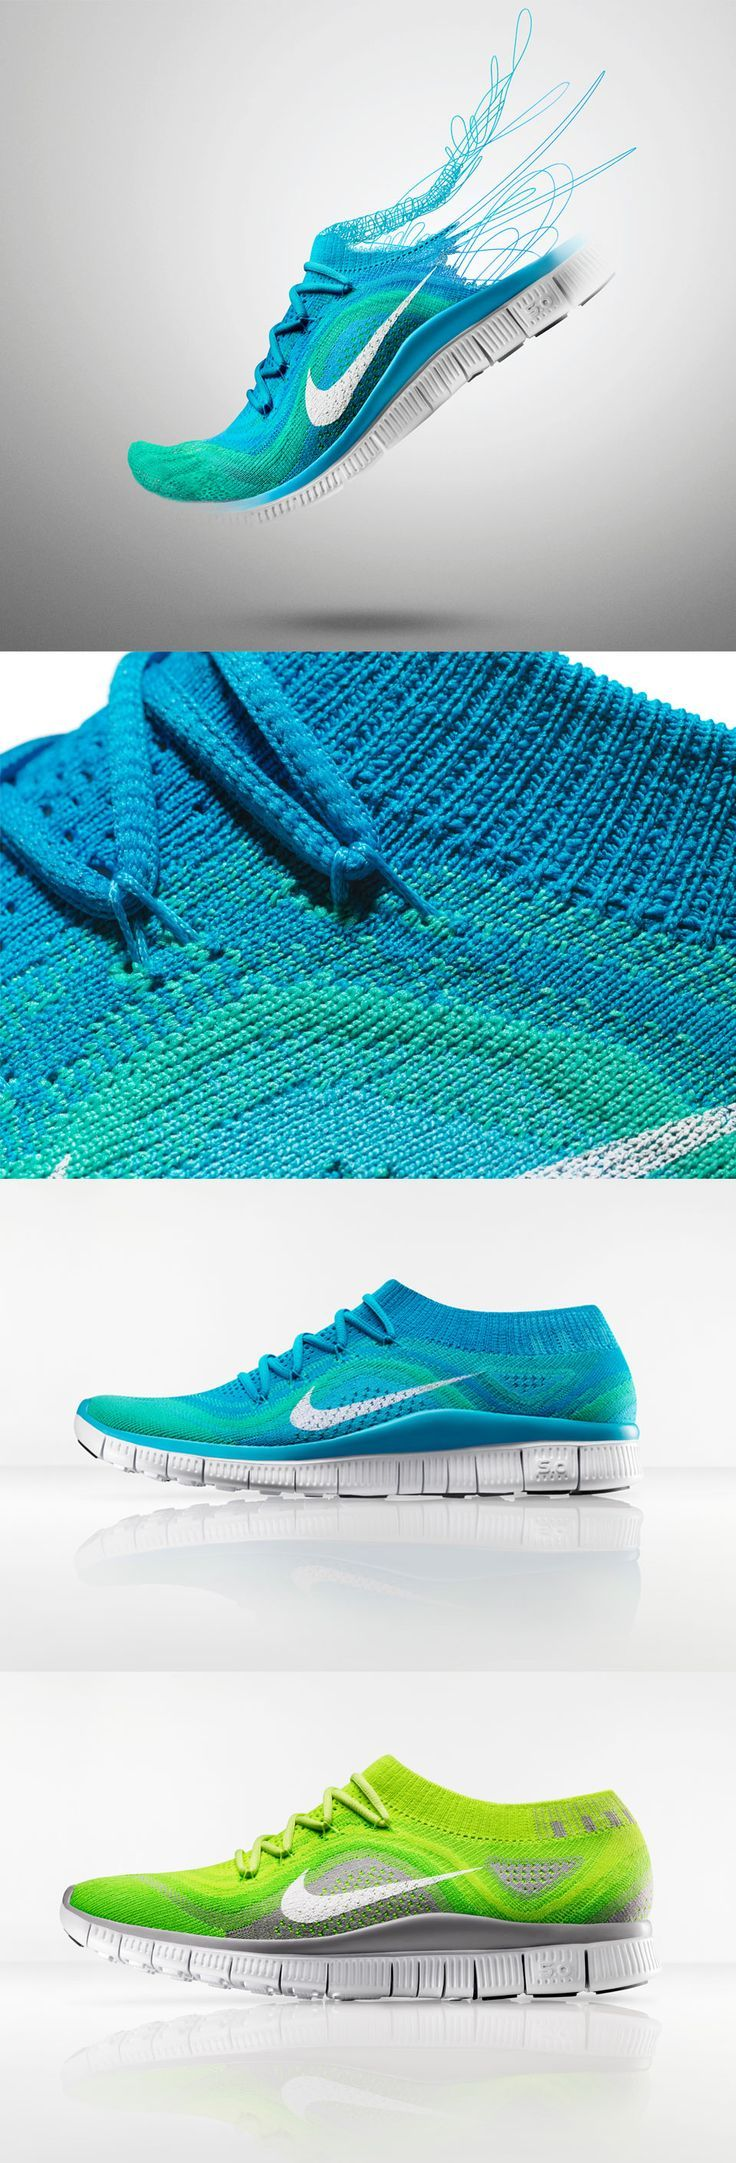 17 Best images about Sneakers on Pinterest | Running shoes, Online ...